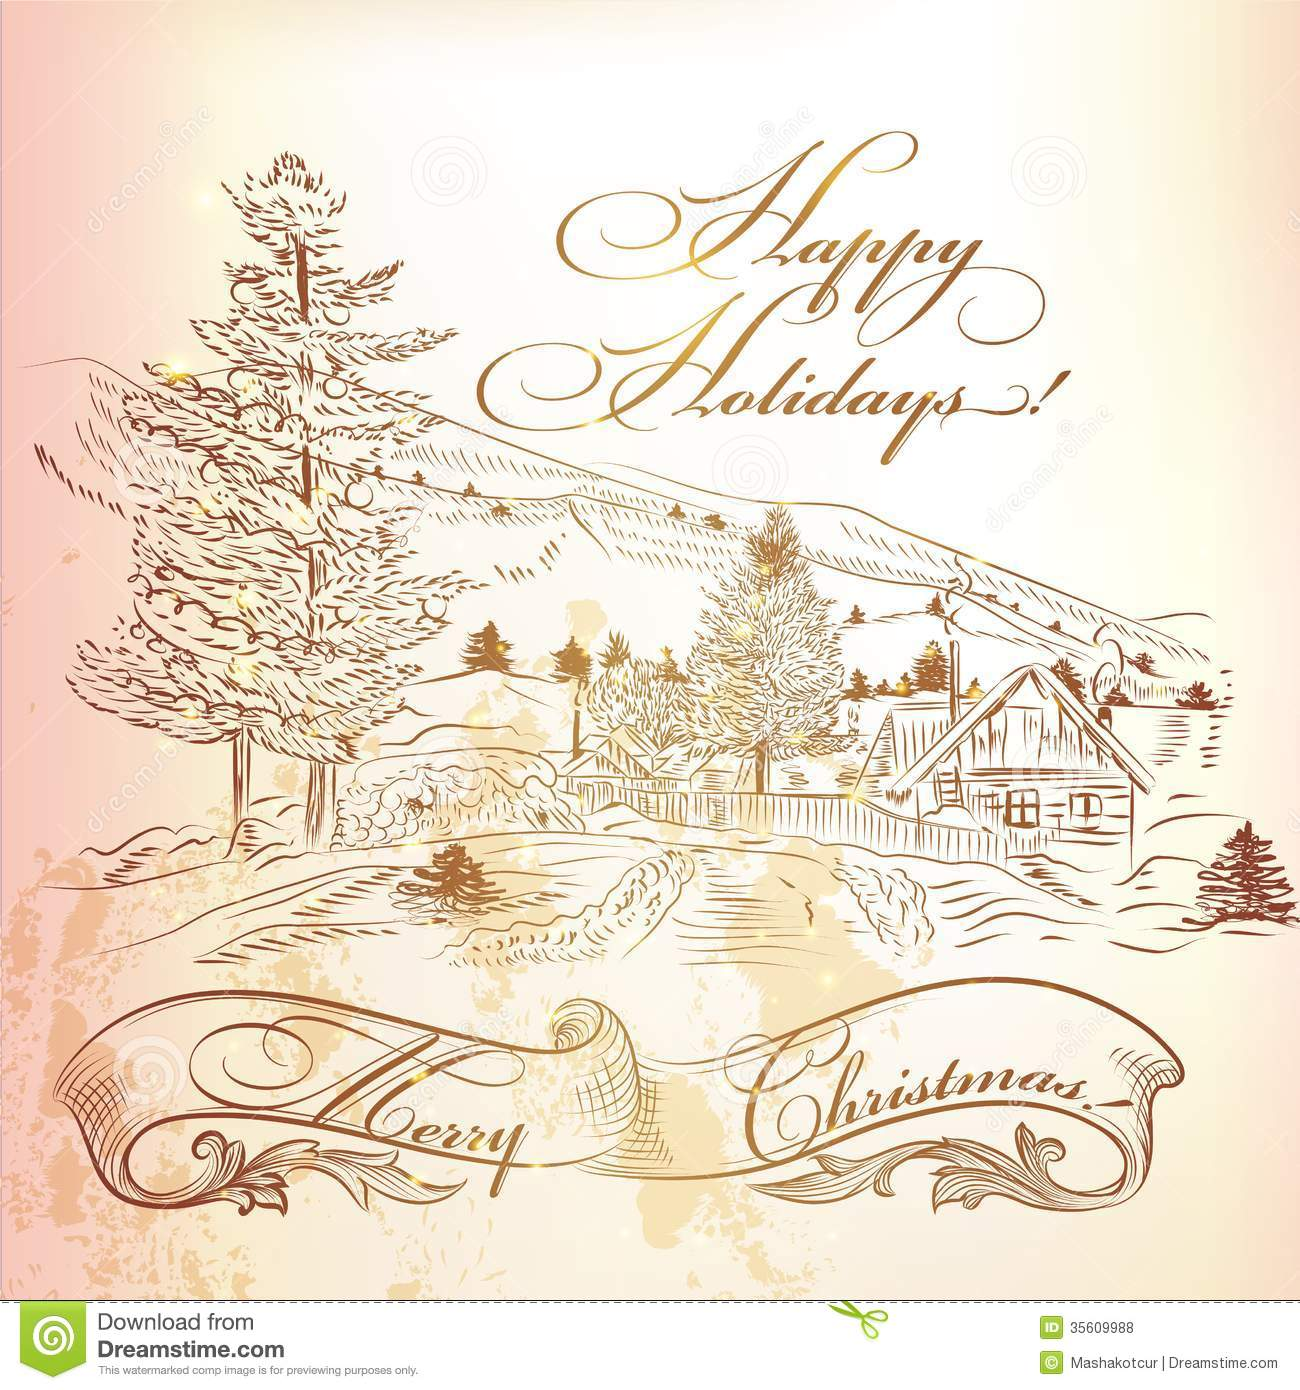 Greeting card style shefftunes greeting card style m4hsunfo